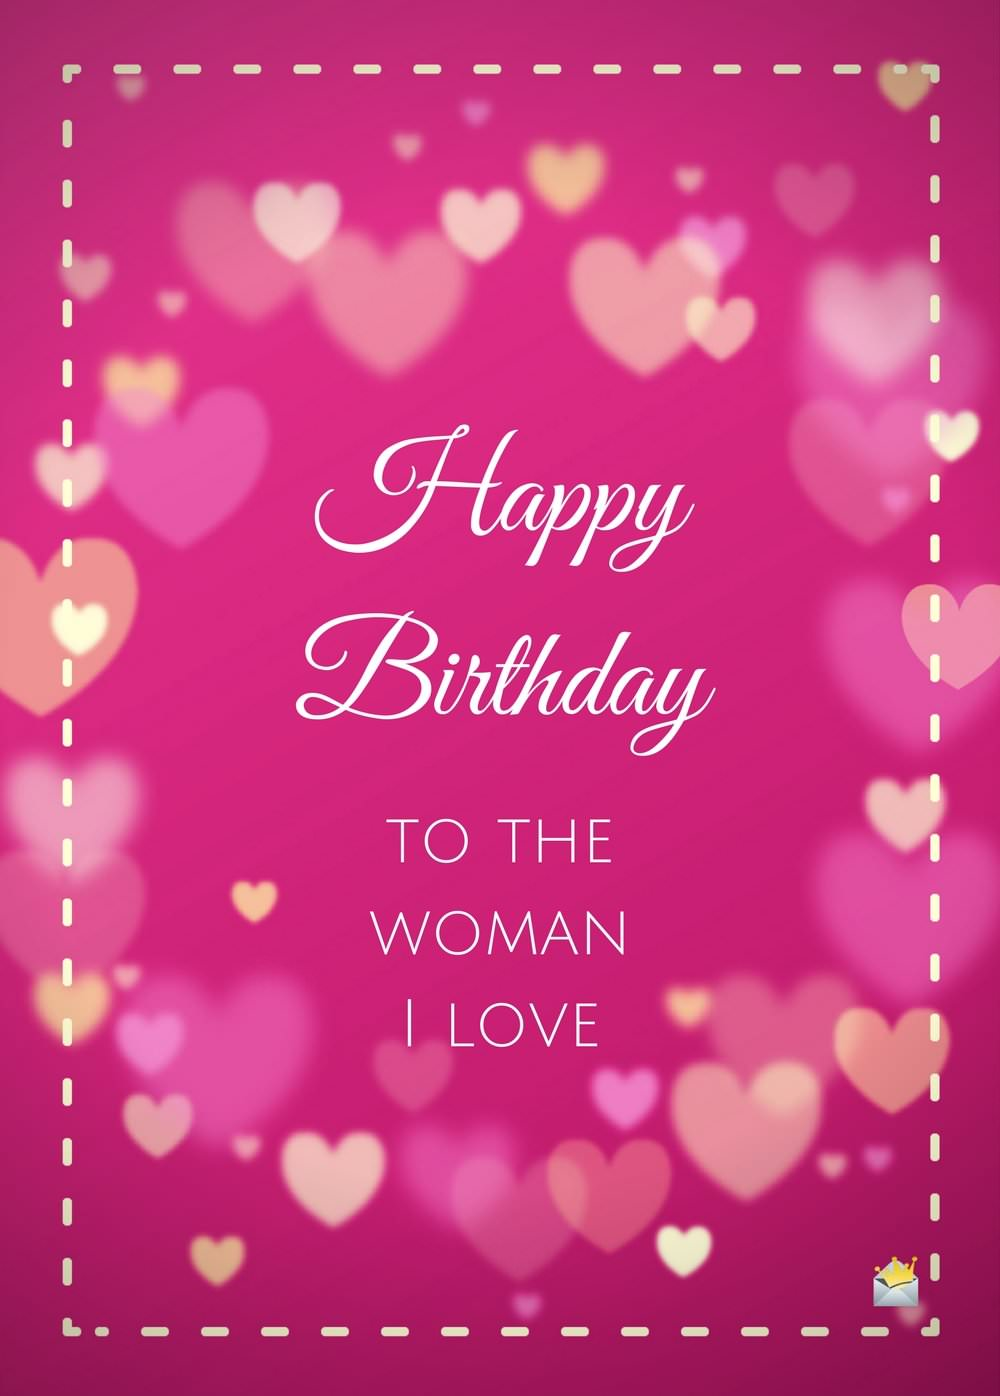 happy birthday messages and images ; Happy-Birthday-to-the-woman-I-love